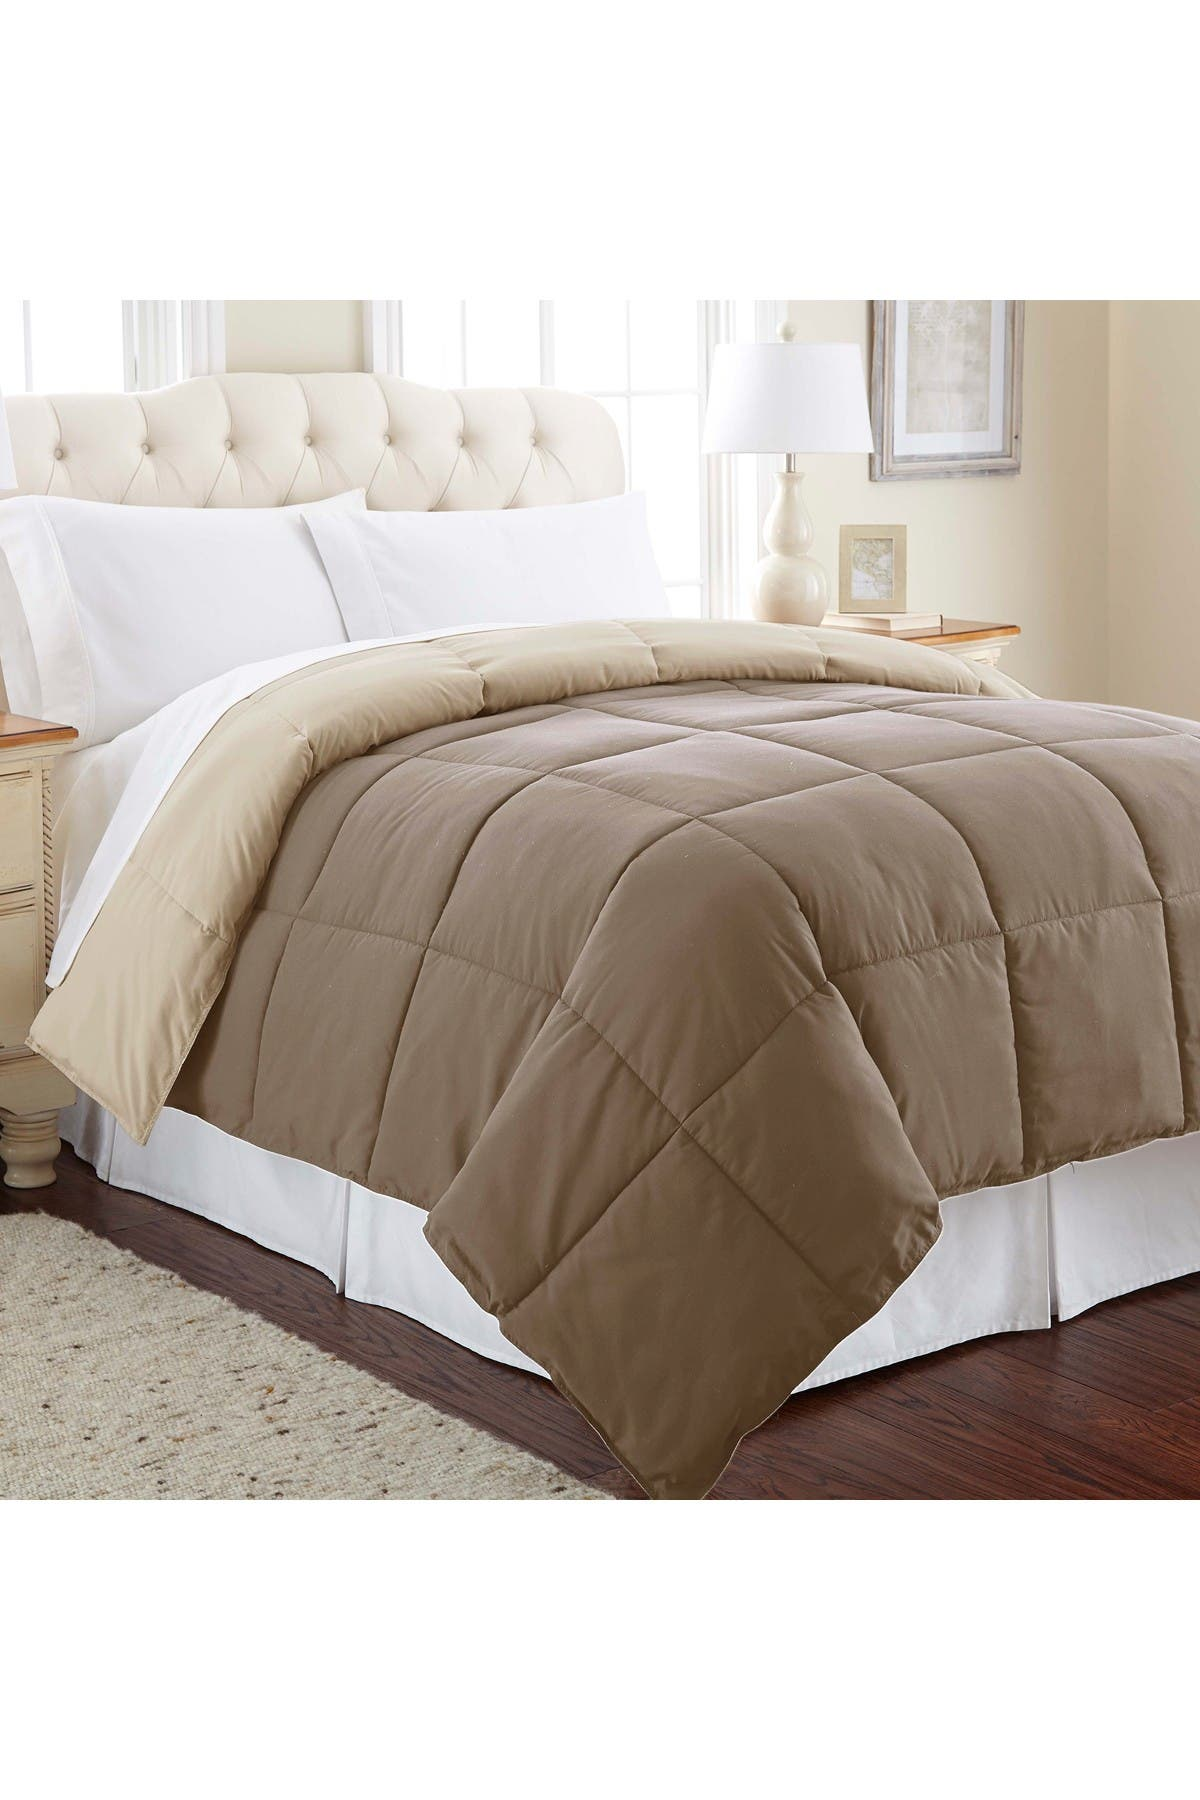 Image of Modern Threads King Down Alternative Reversible Comforter - Stone/Champagne